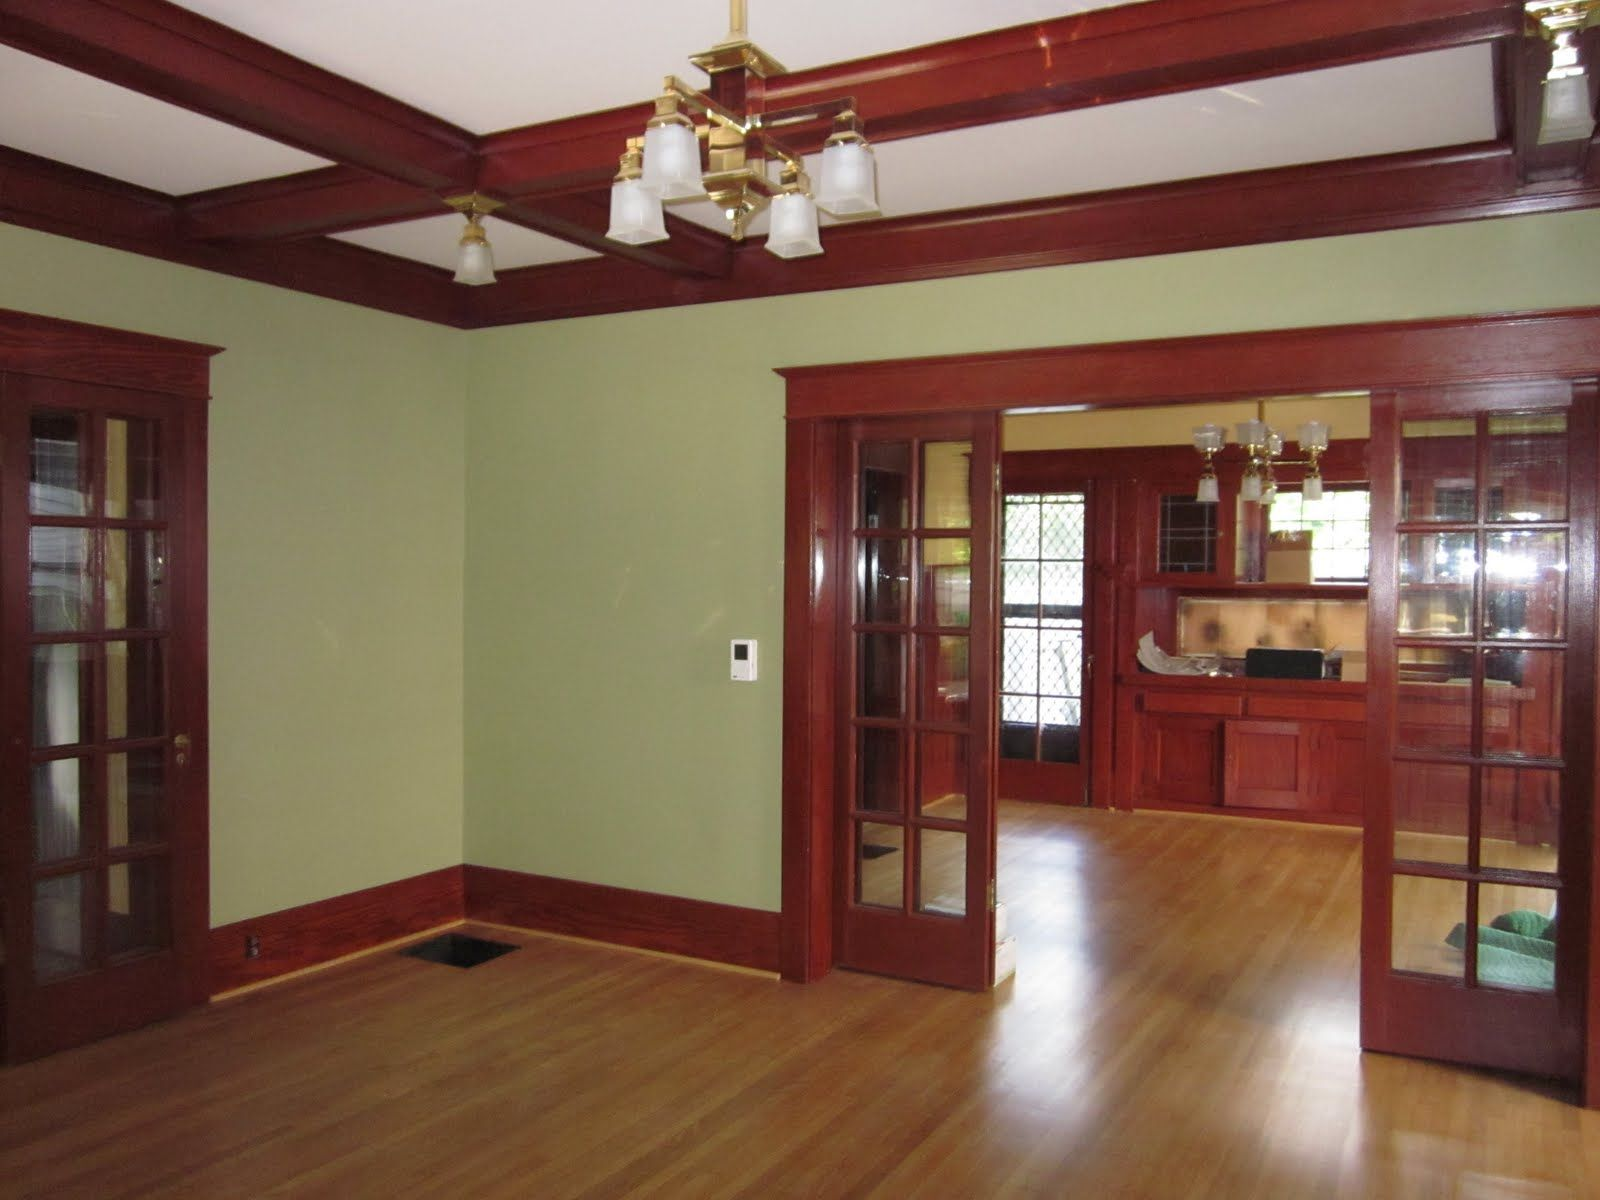 1920 historic house colors craftsman home interior paint on interior home paint schemes id=92085